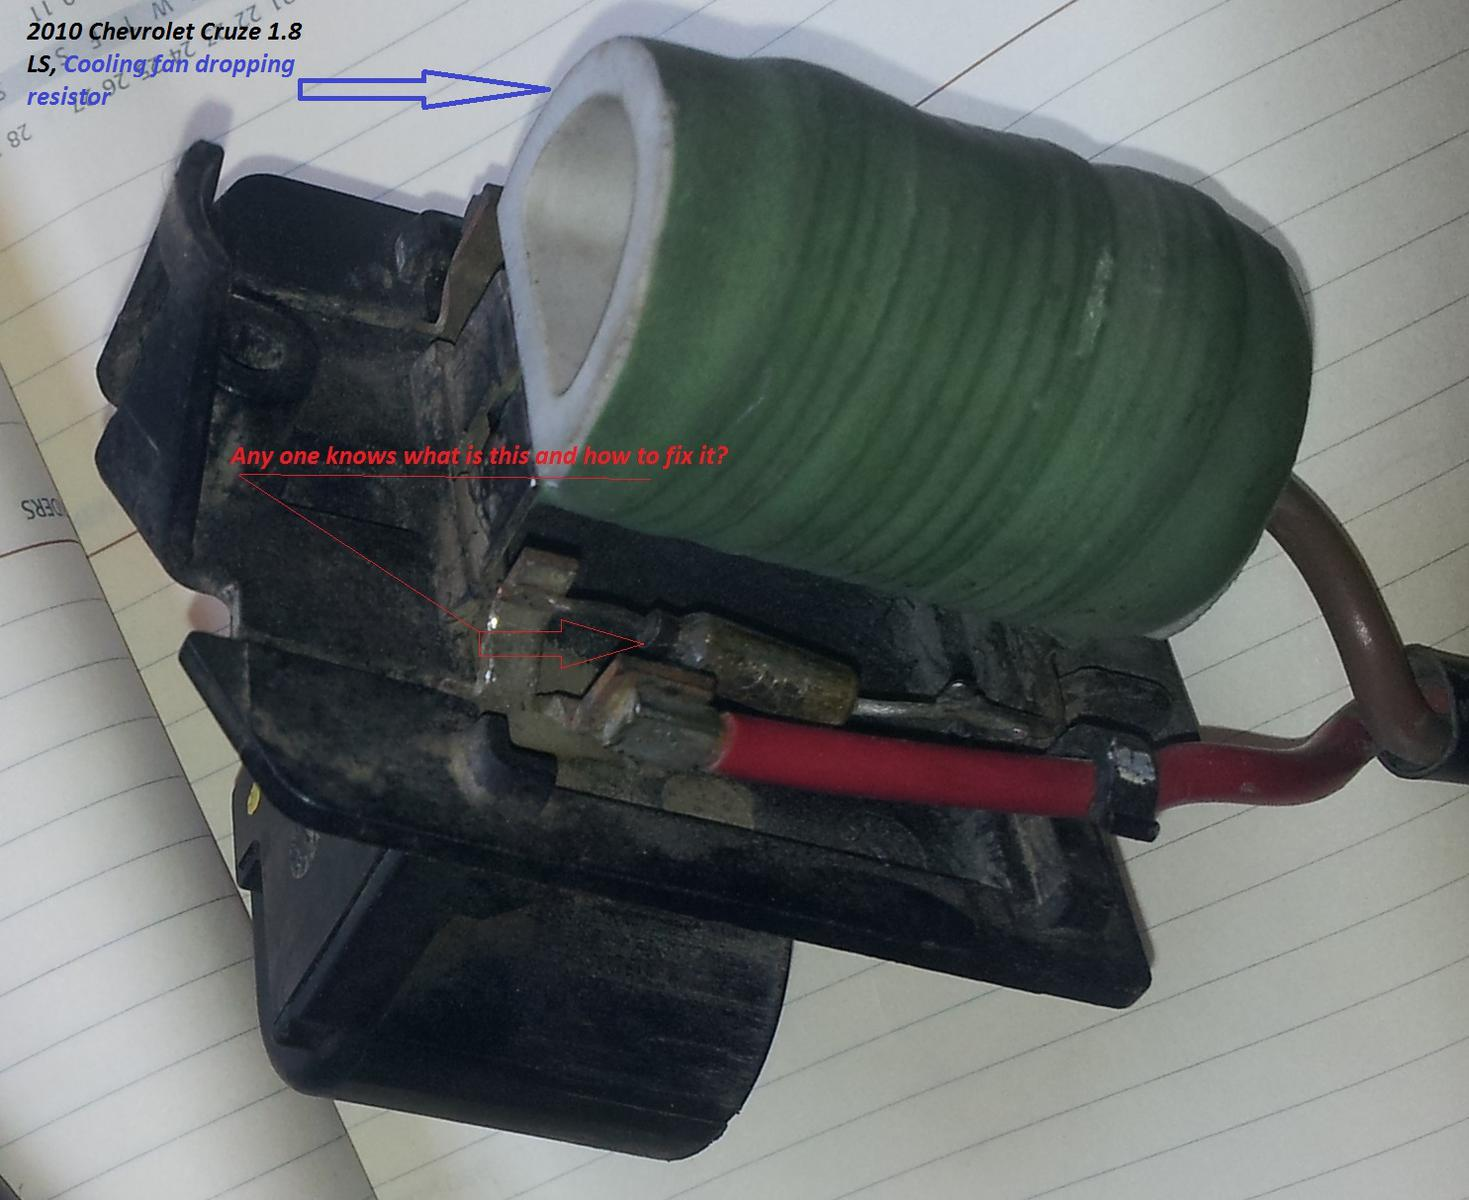 2011 Chevy Cruze Fan Diagram Wiring Library